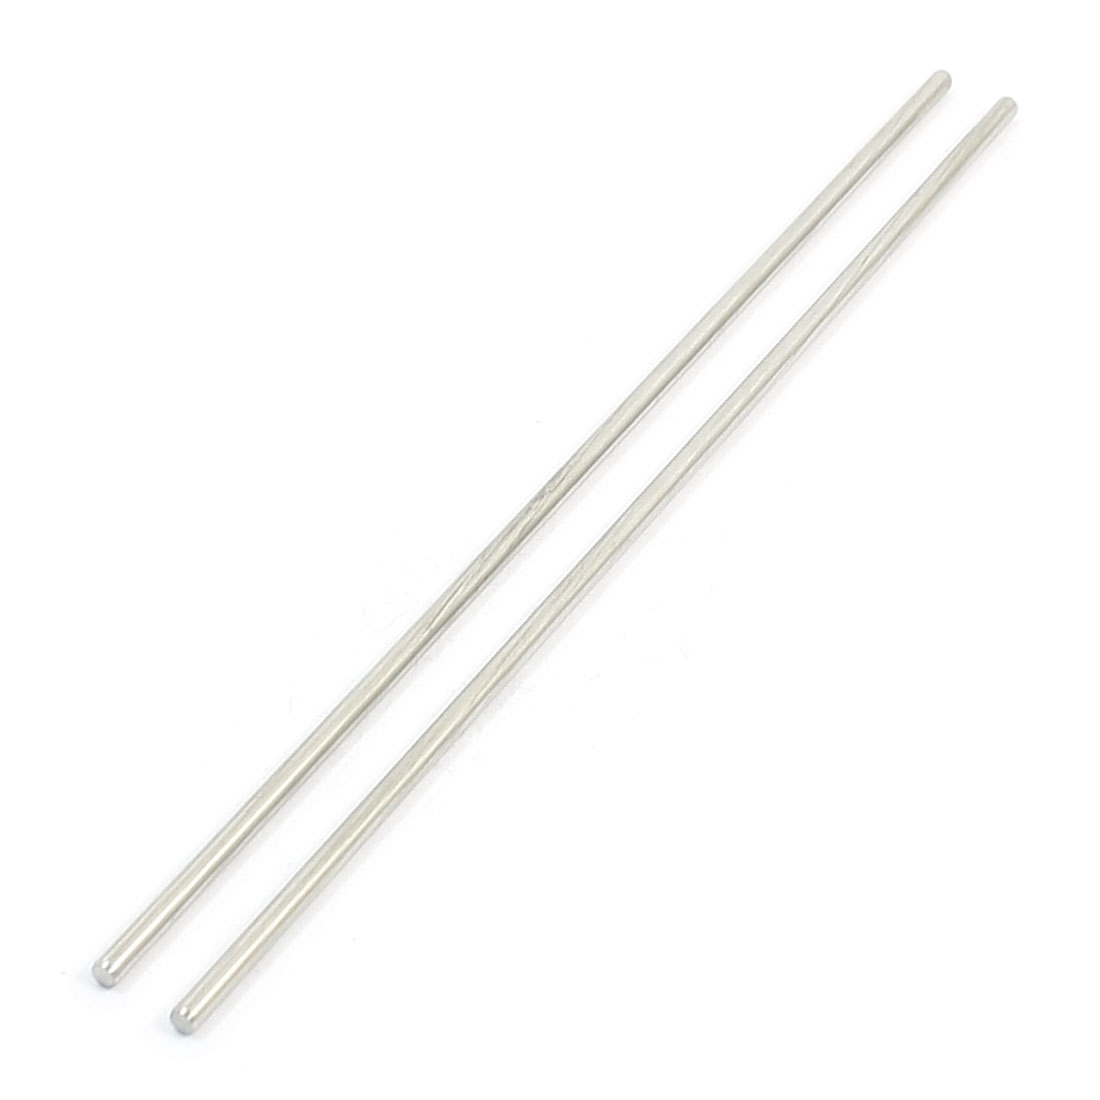 "2Pcs 2.5mm Diameter Stainless Steel Motion Axle Circular Round Rod Bar 5.9"" Long"